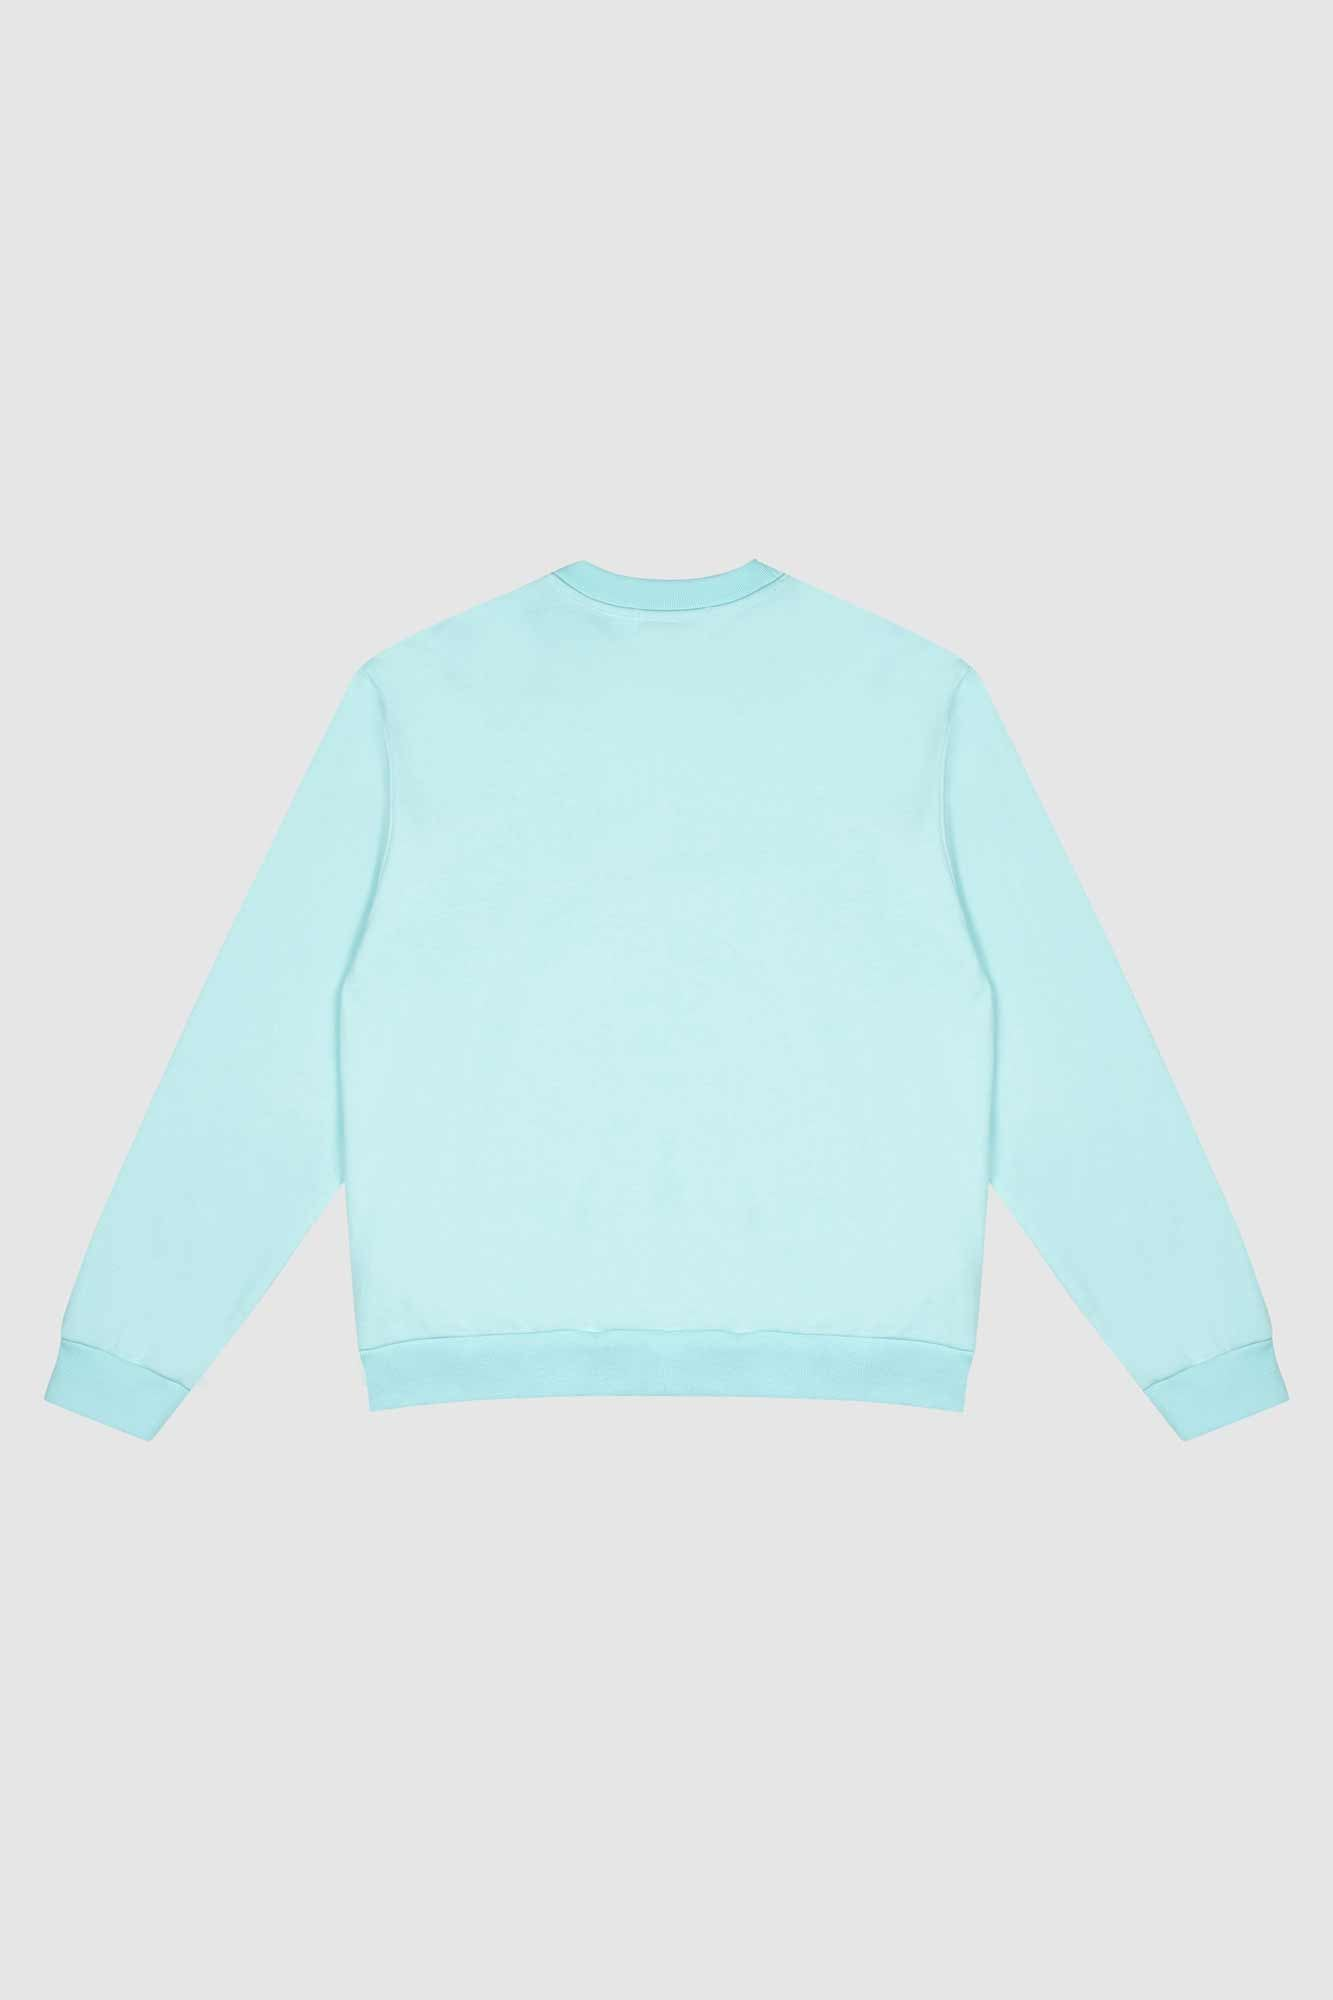 Photo of Beach Blue Uniform Crewneck, number 2